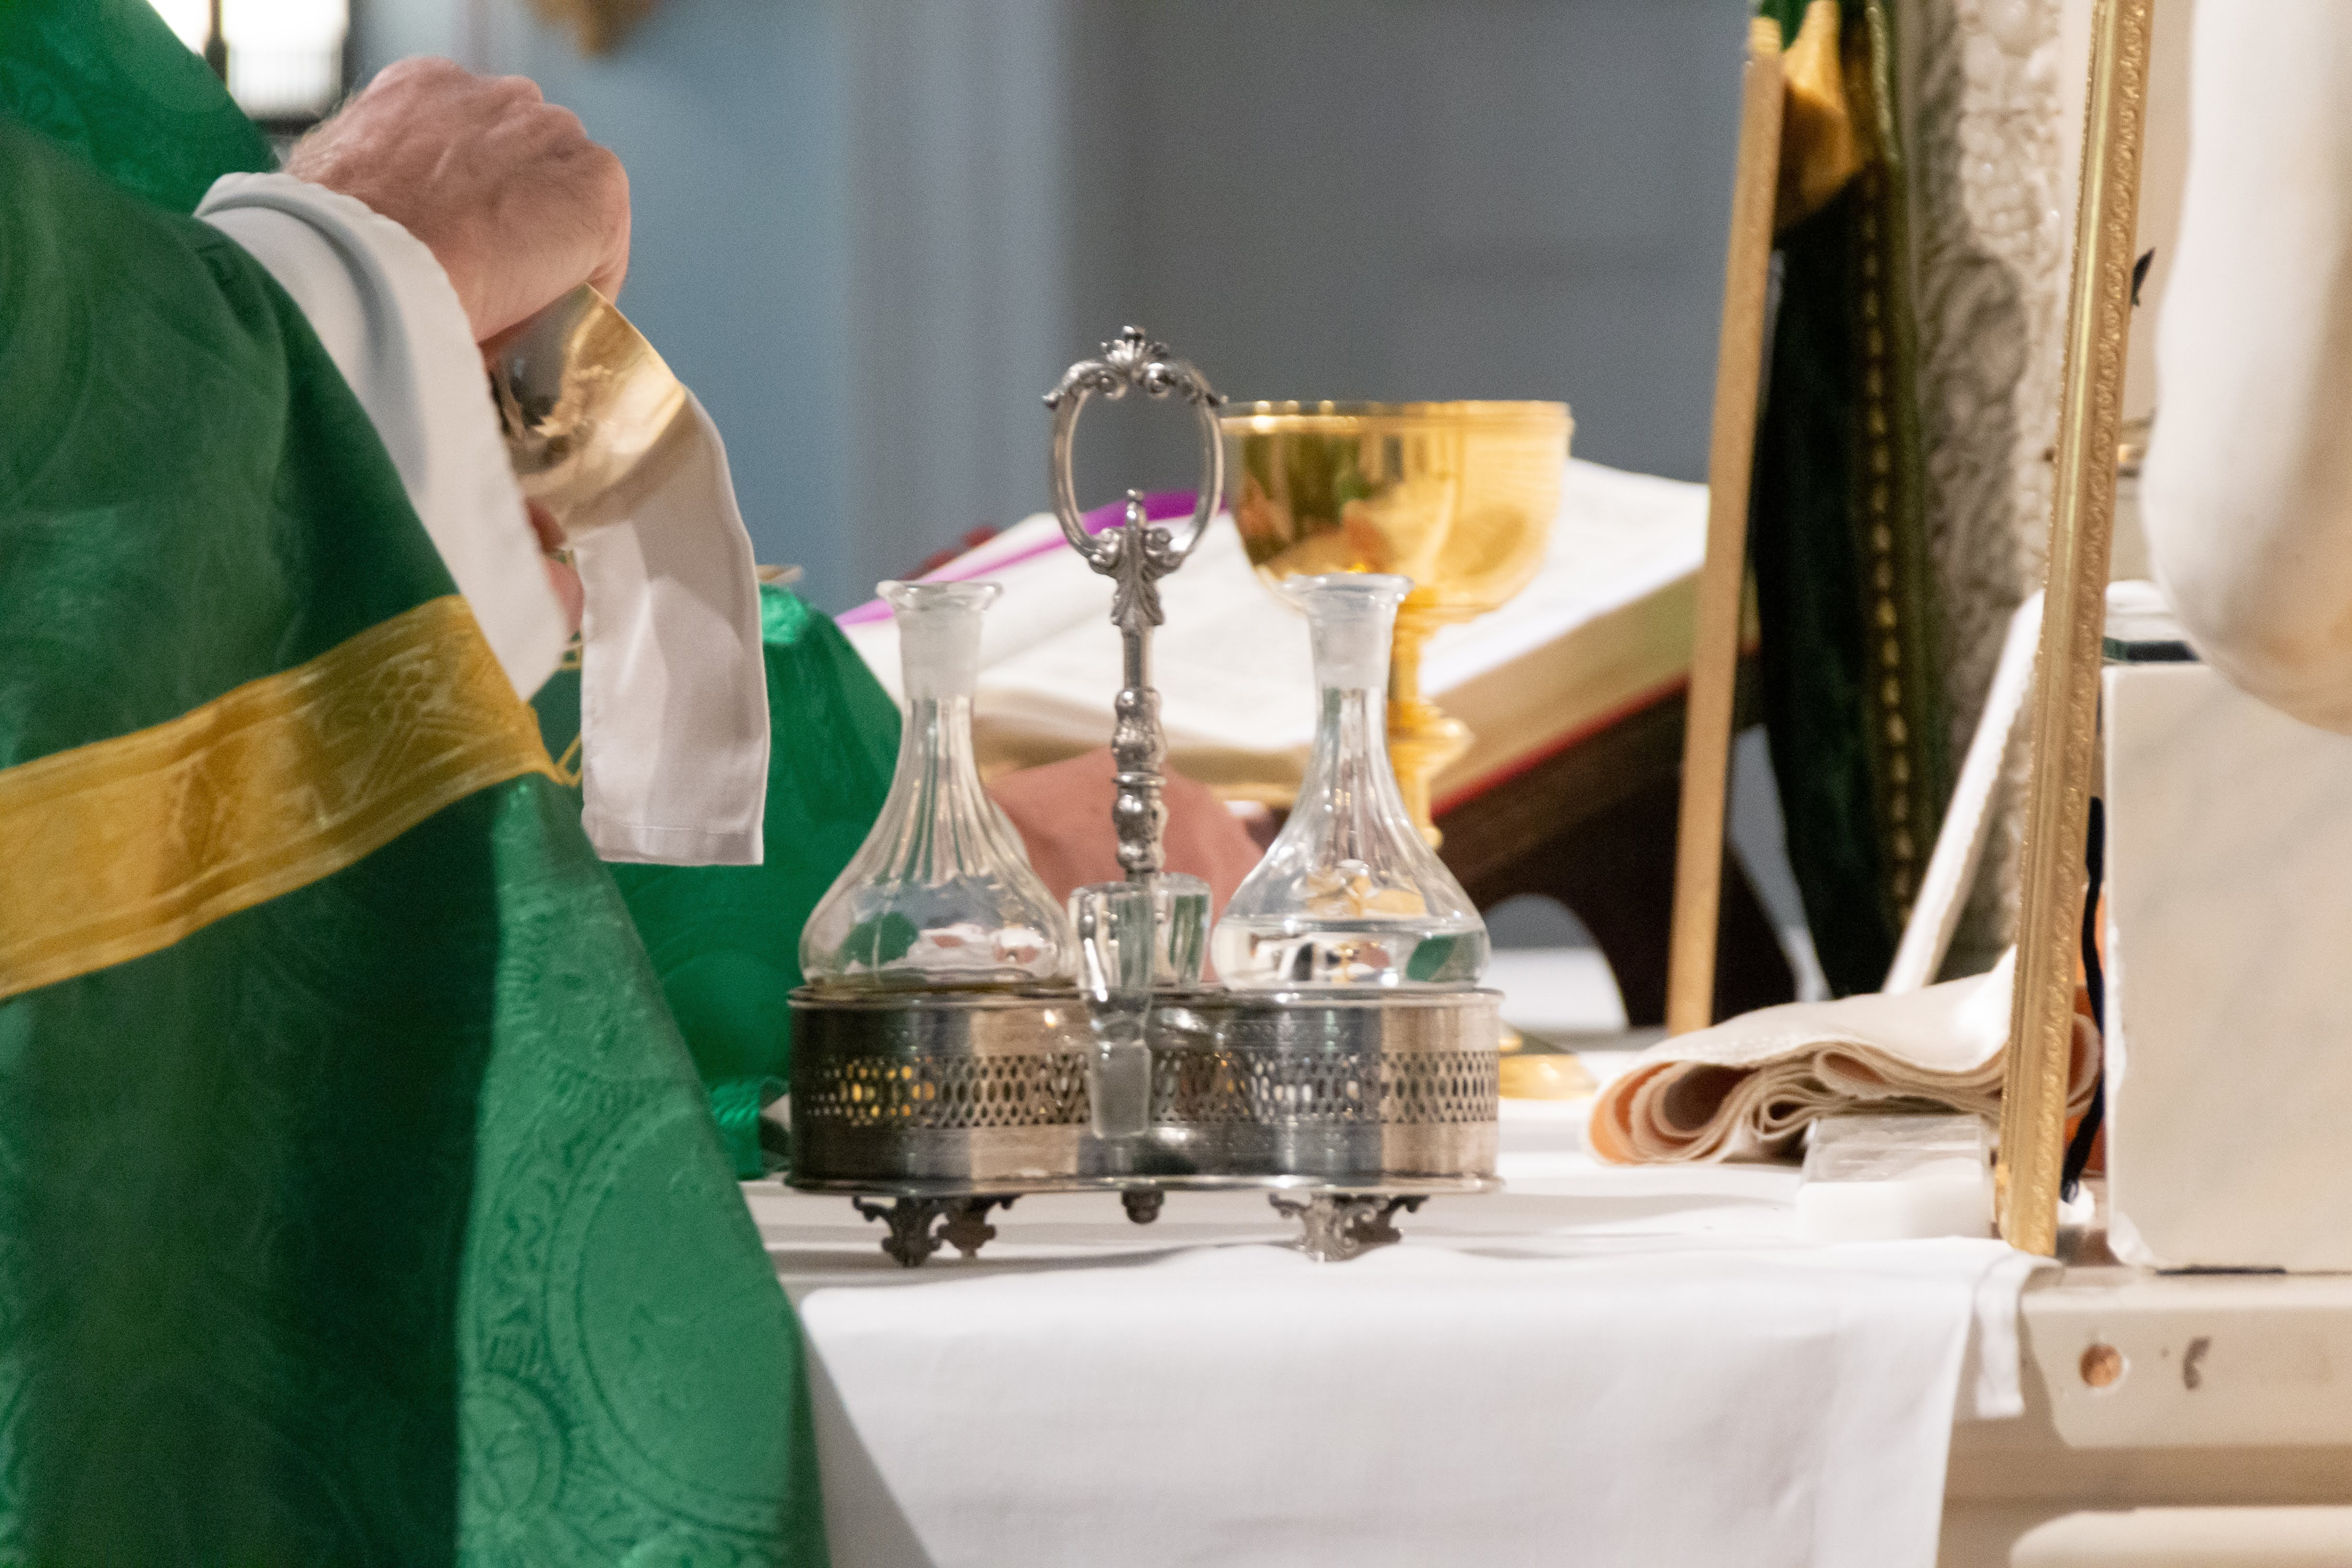 priest green altar homily.jpg